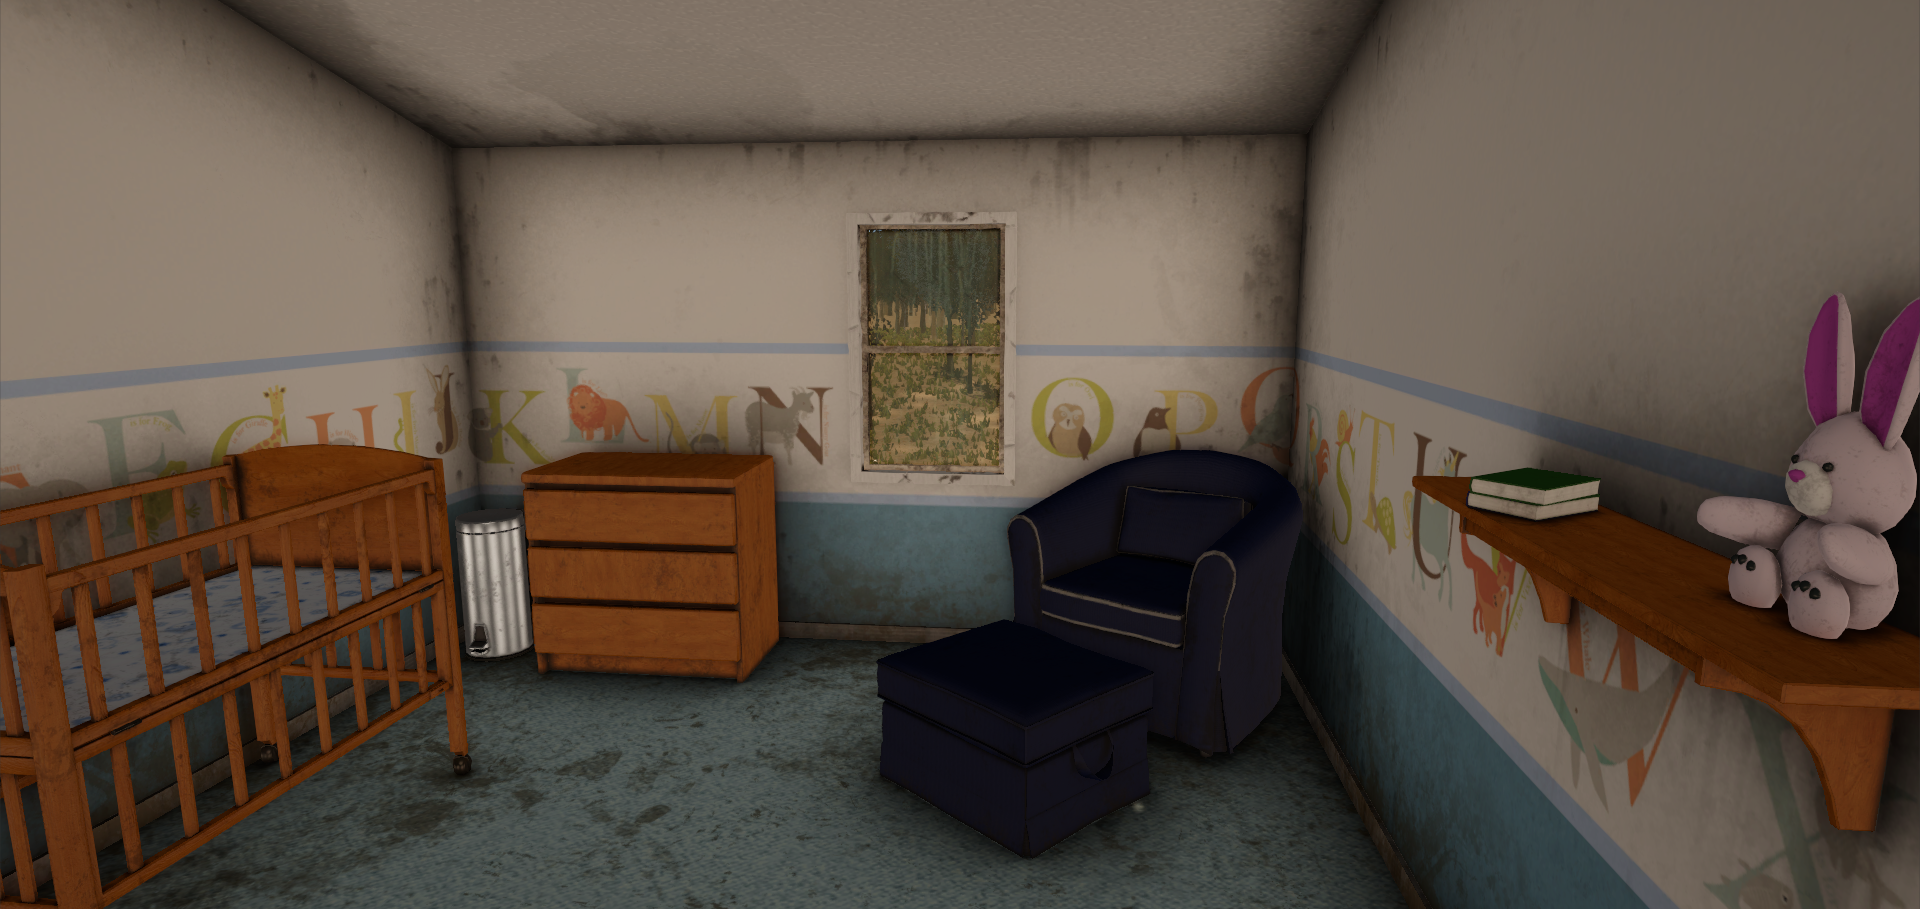 Bedroom 2, after. With GI Proxy. You can see this makes a huge difference with metallic objects like the garbage can.